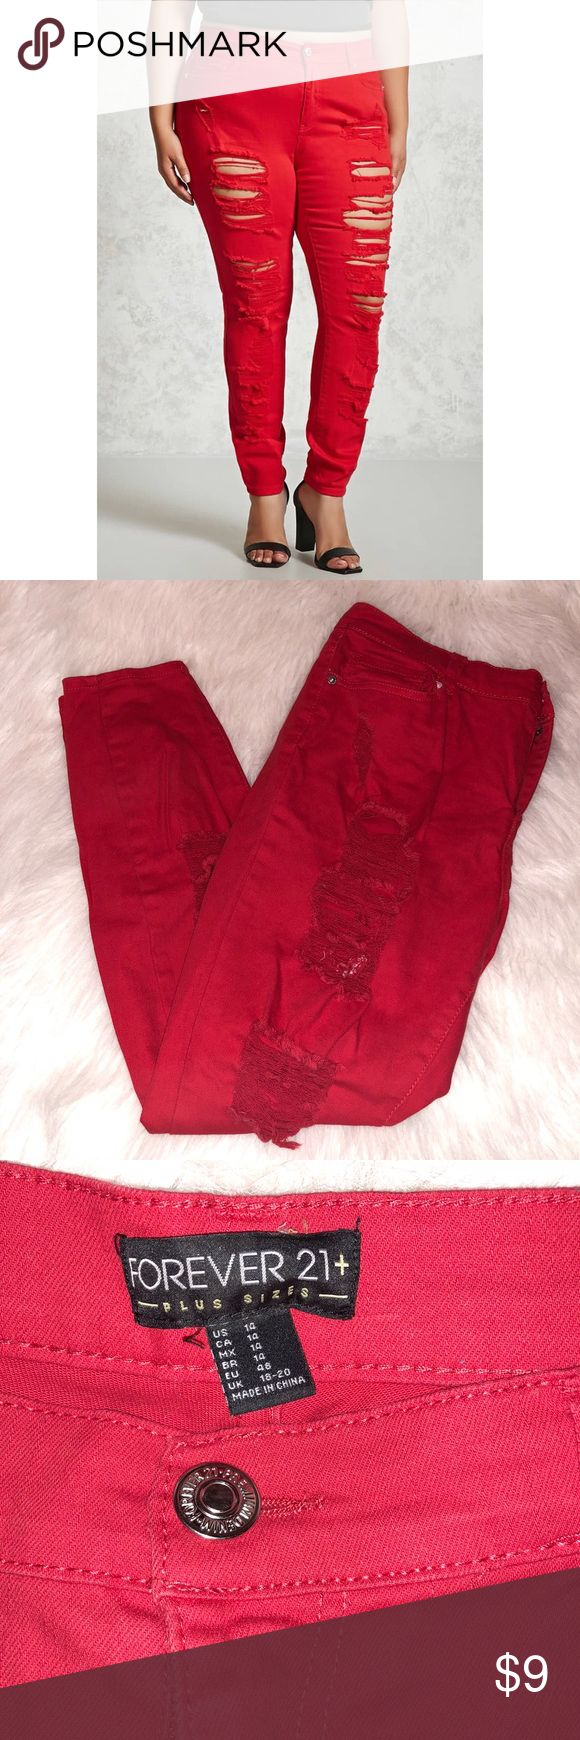 """Forever 21 Red Distressed Skinny Jeans Worn a few times so does have some signs of wear. On the back as seen in the last two photos is black marks from a clay tennis court when I was doing a photo shoot. Otherwise the jeans are in good condition. Distressed jeans. Mid-rise. 98% cotton and 2% spandex. Waist is approx 34"""" and inseam is approx 28"""". Price to sell. ✨All my items under $10 prices are firm. Stock photo from Forever 21 website. ❌NO TRADES❌ Forever 21 Jeans Skinny"""